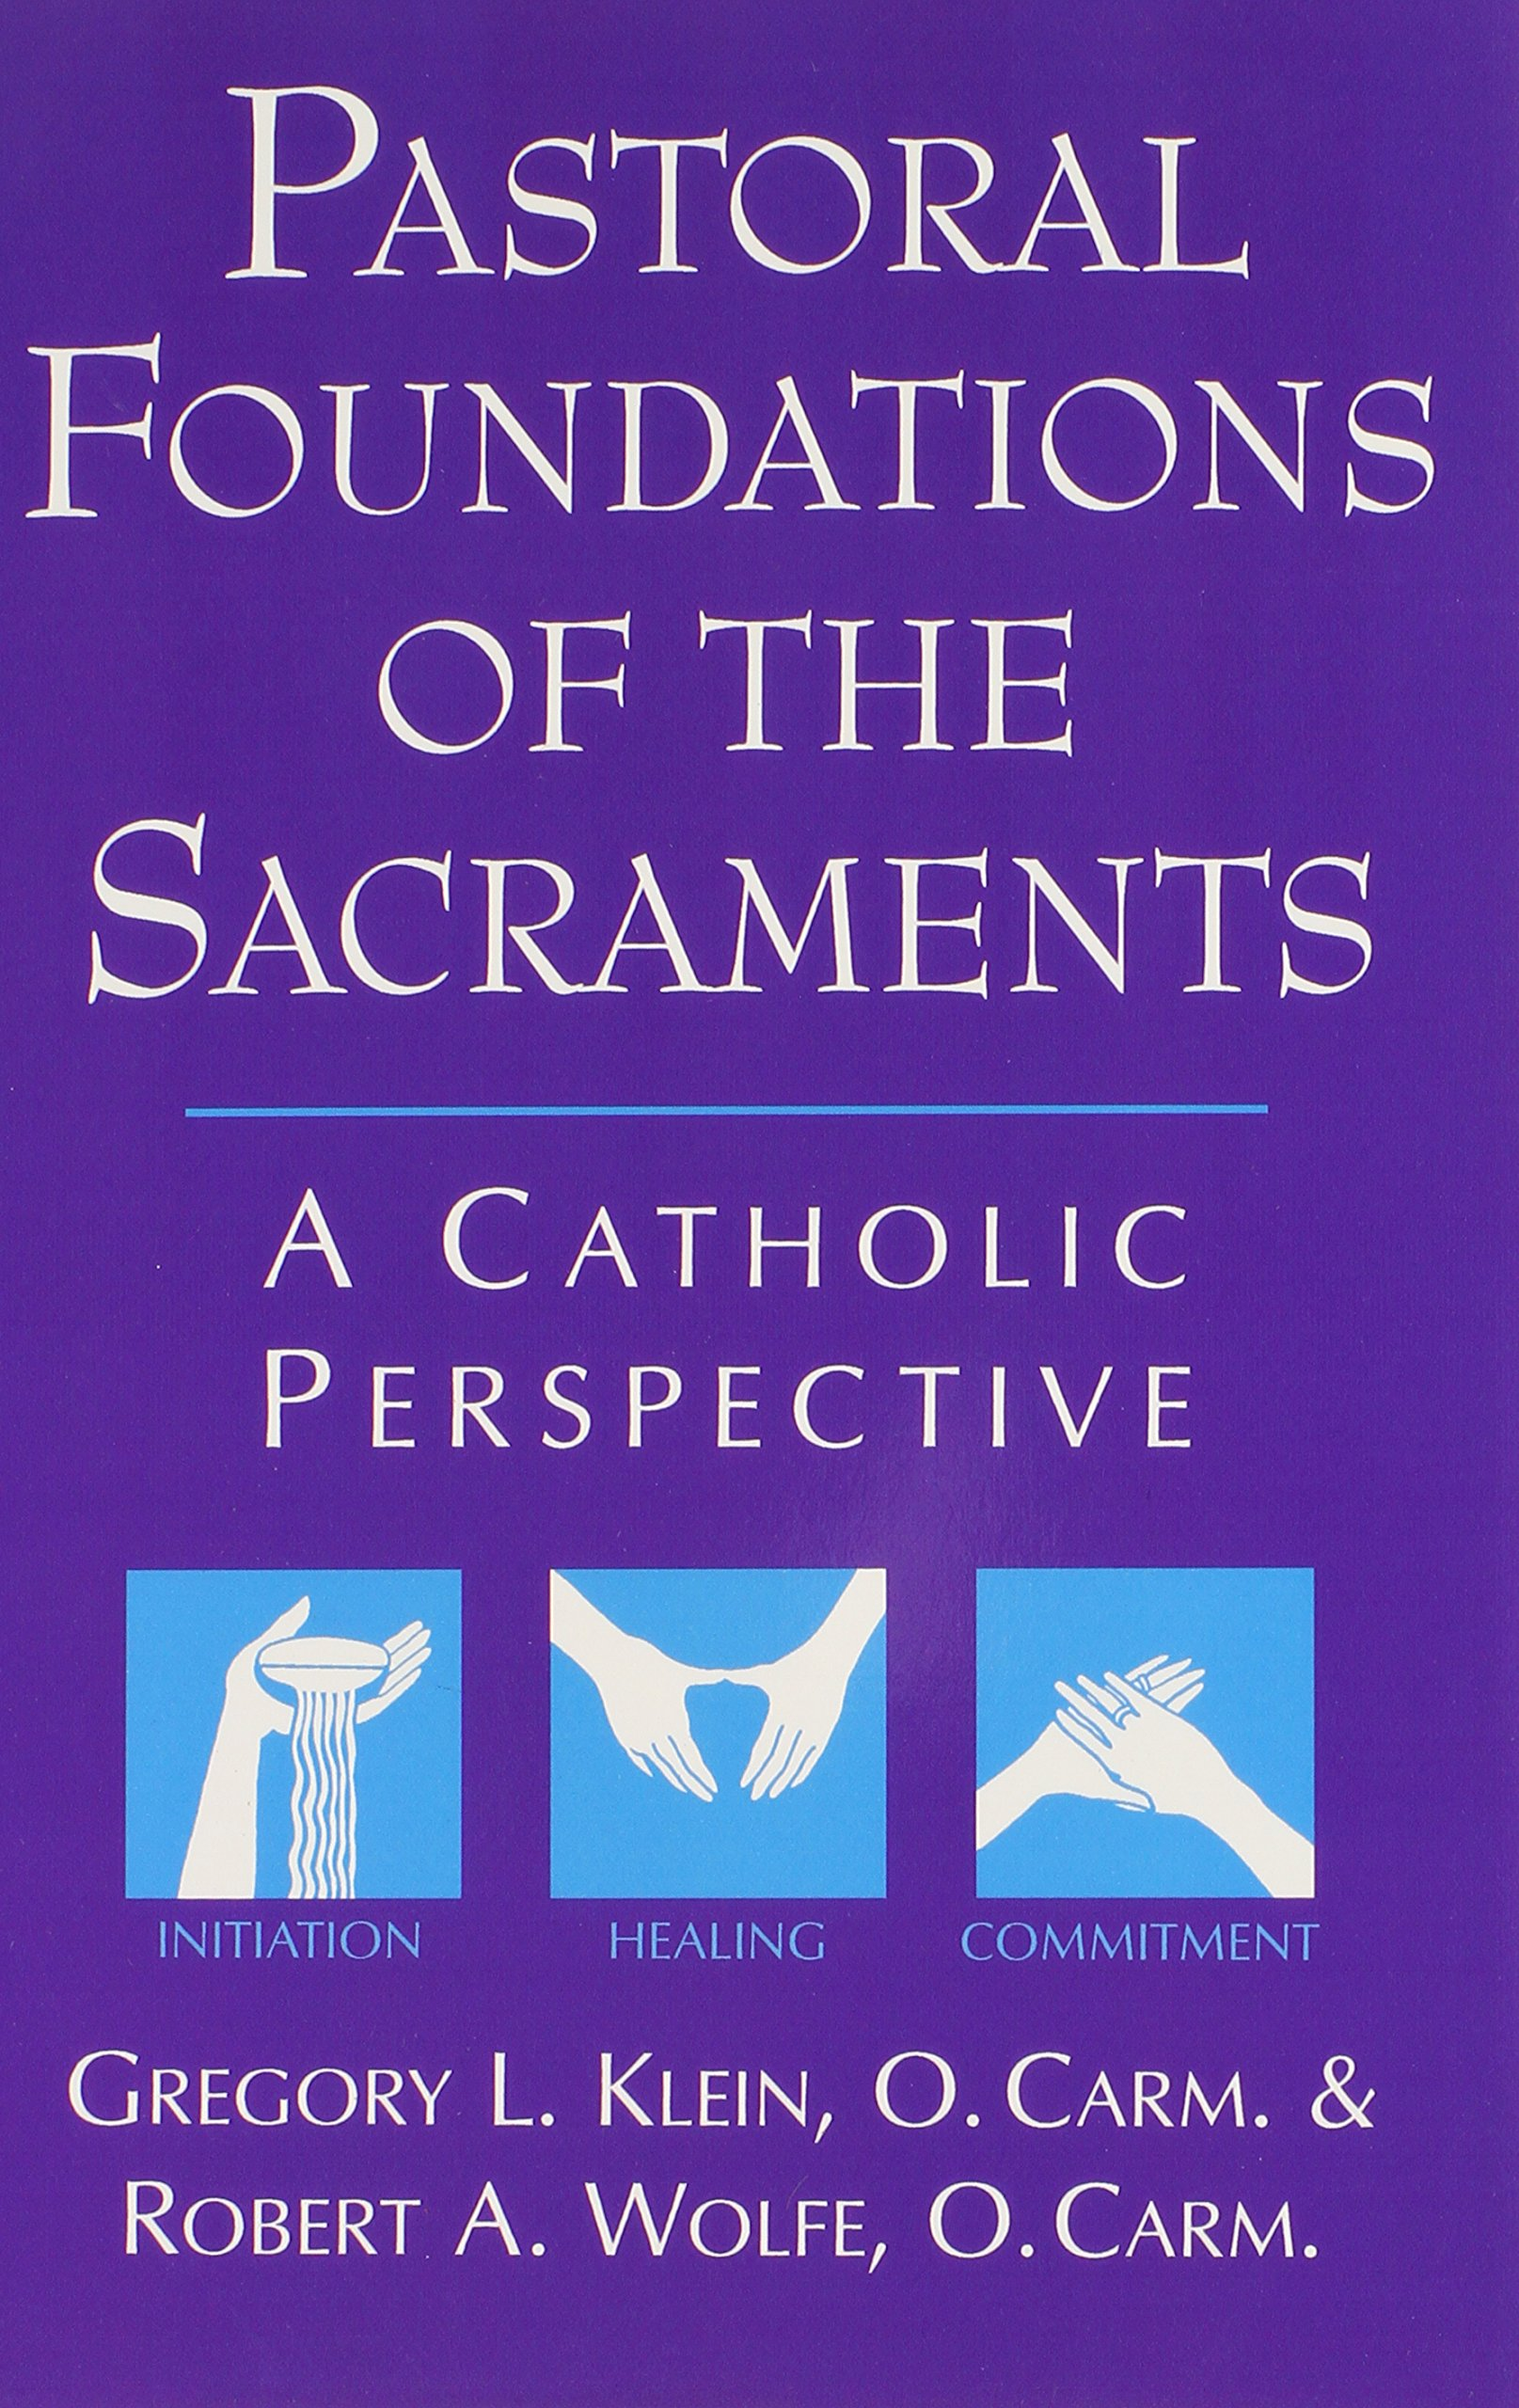 pastoral-foundations-of-the-sacraments-a-catholic-perspective